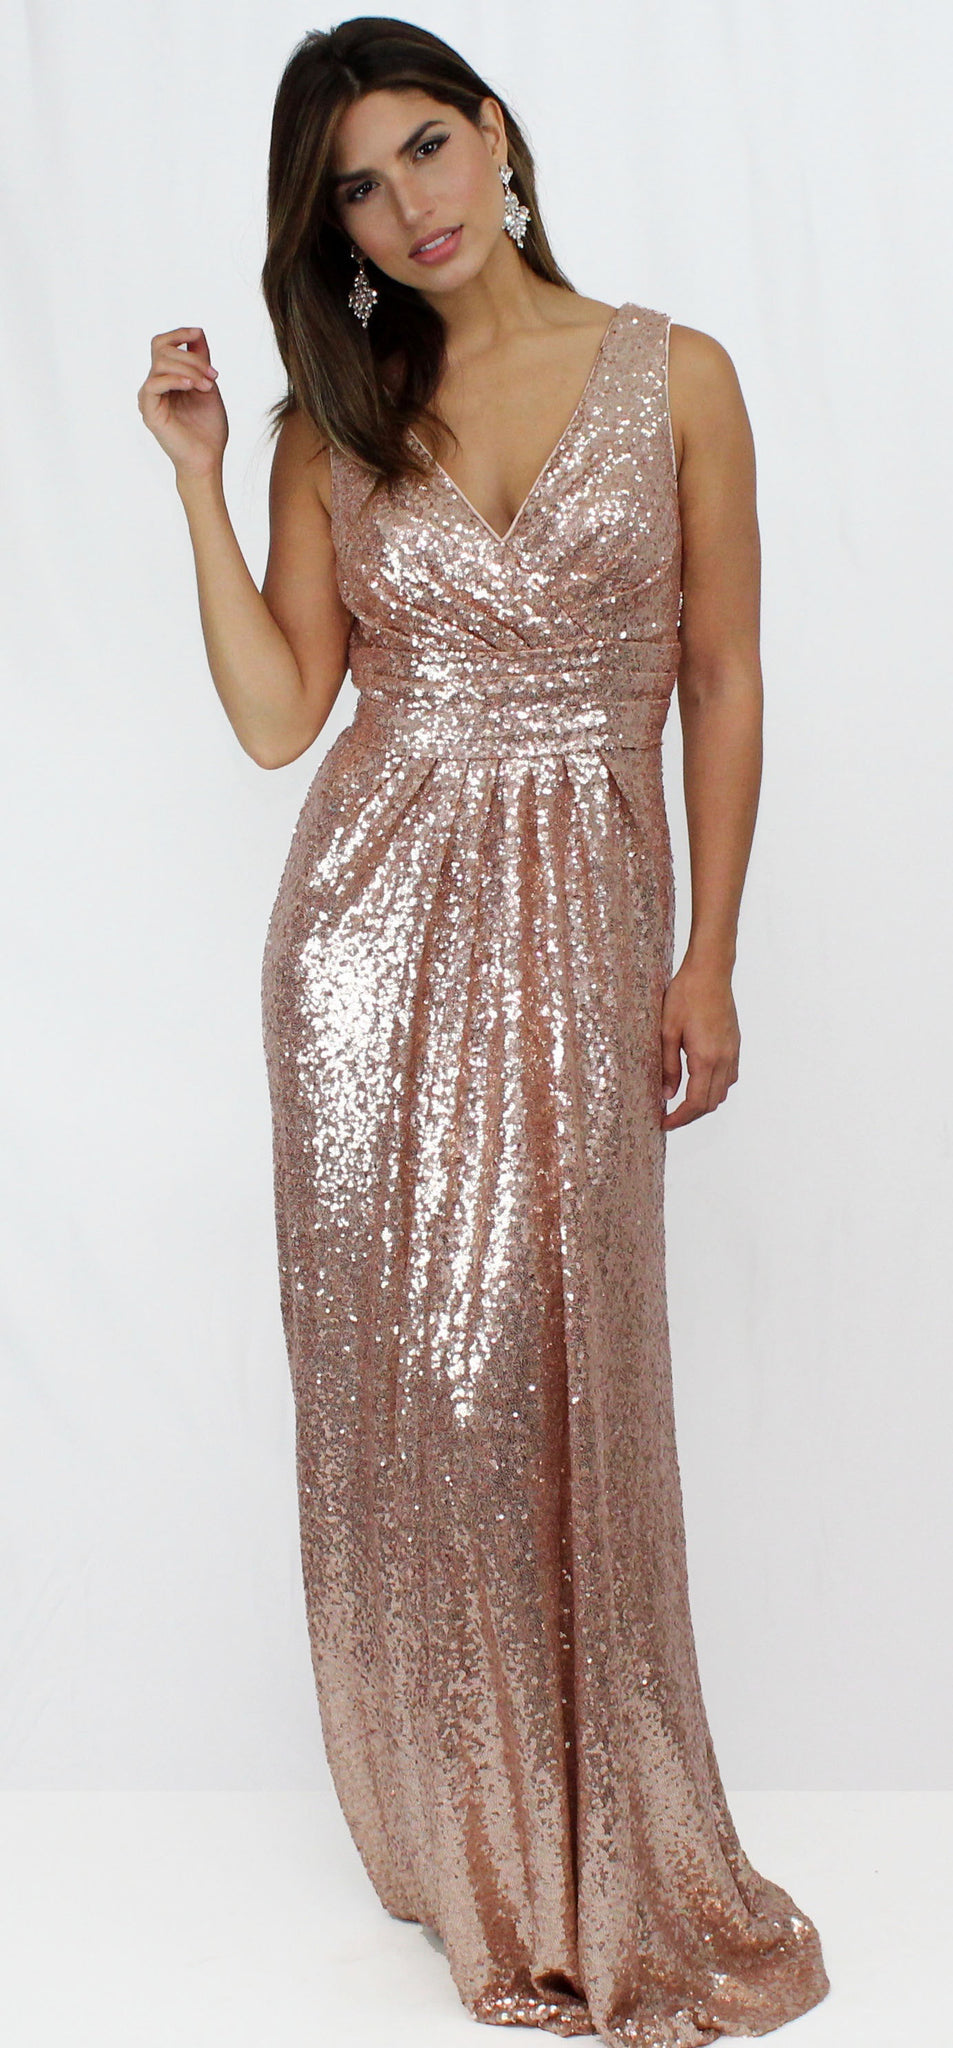 Spotlight Stunner RoseGold Sequins Formal Gown